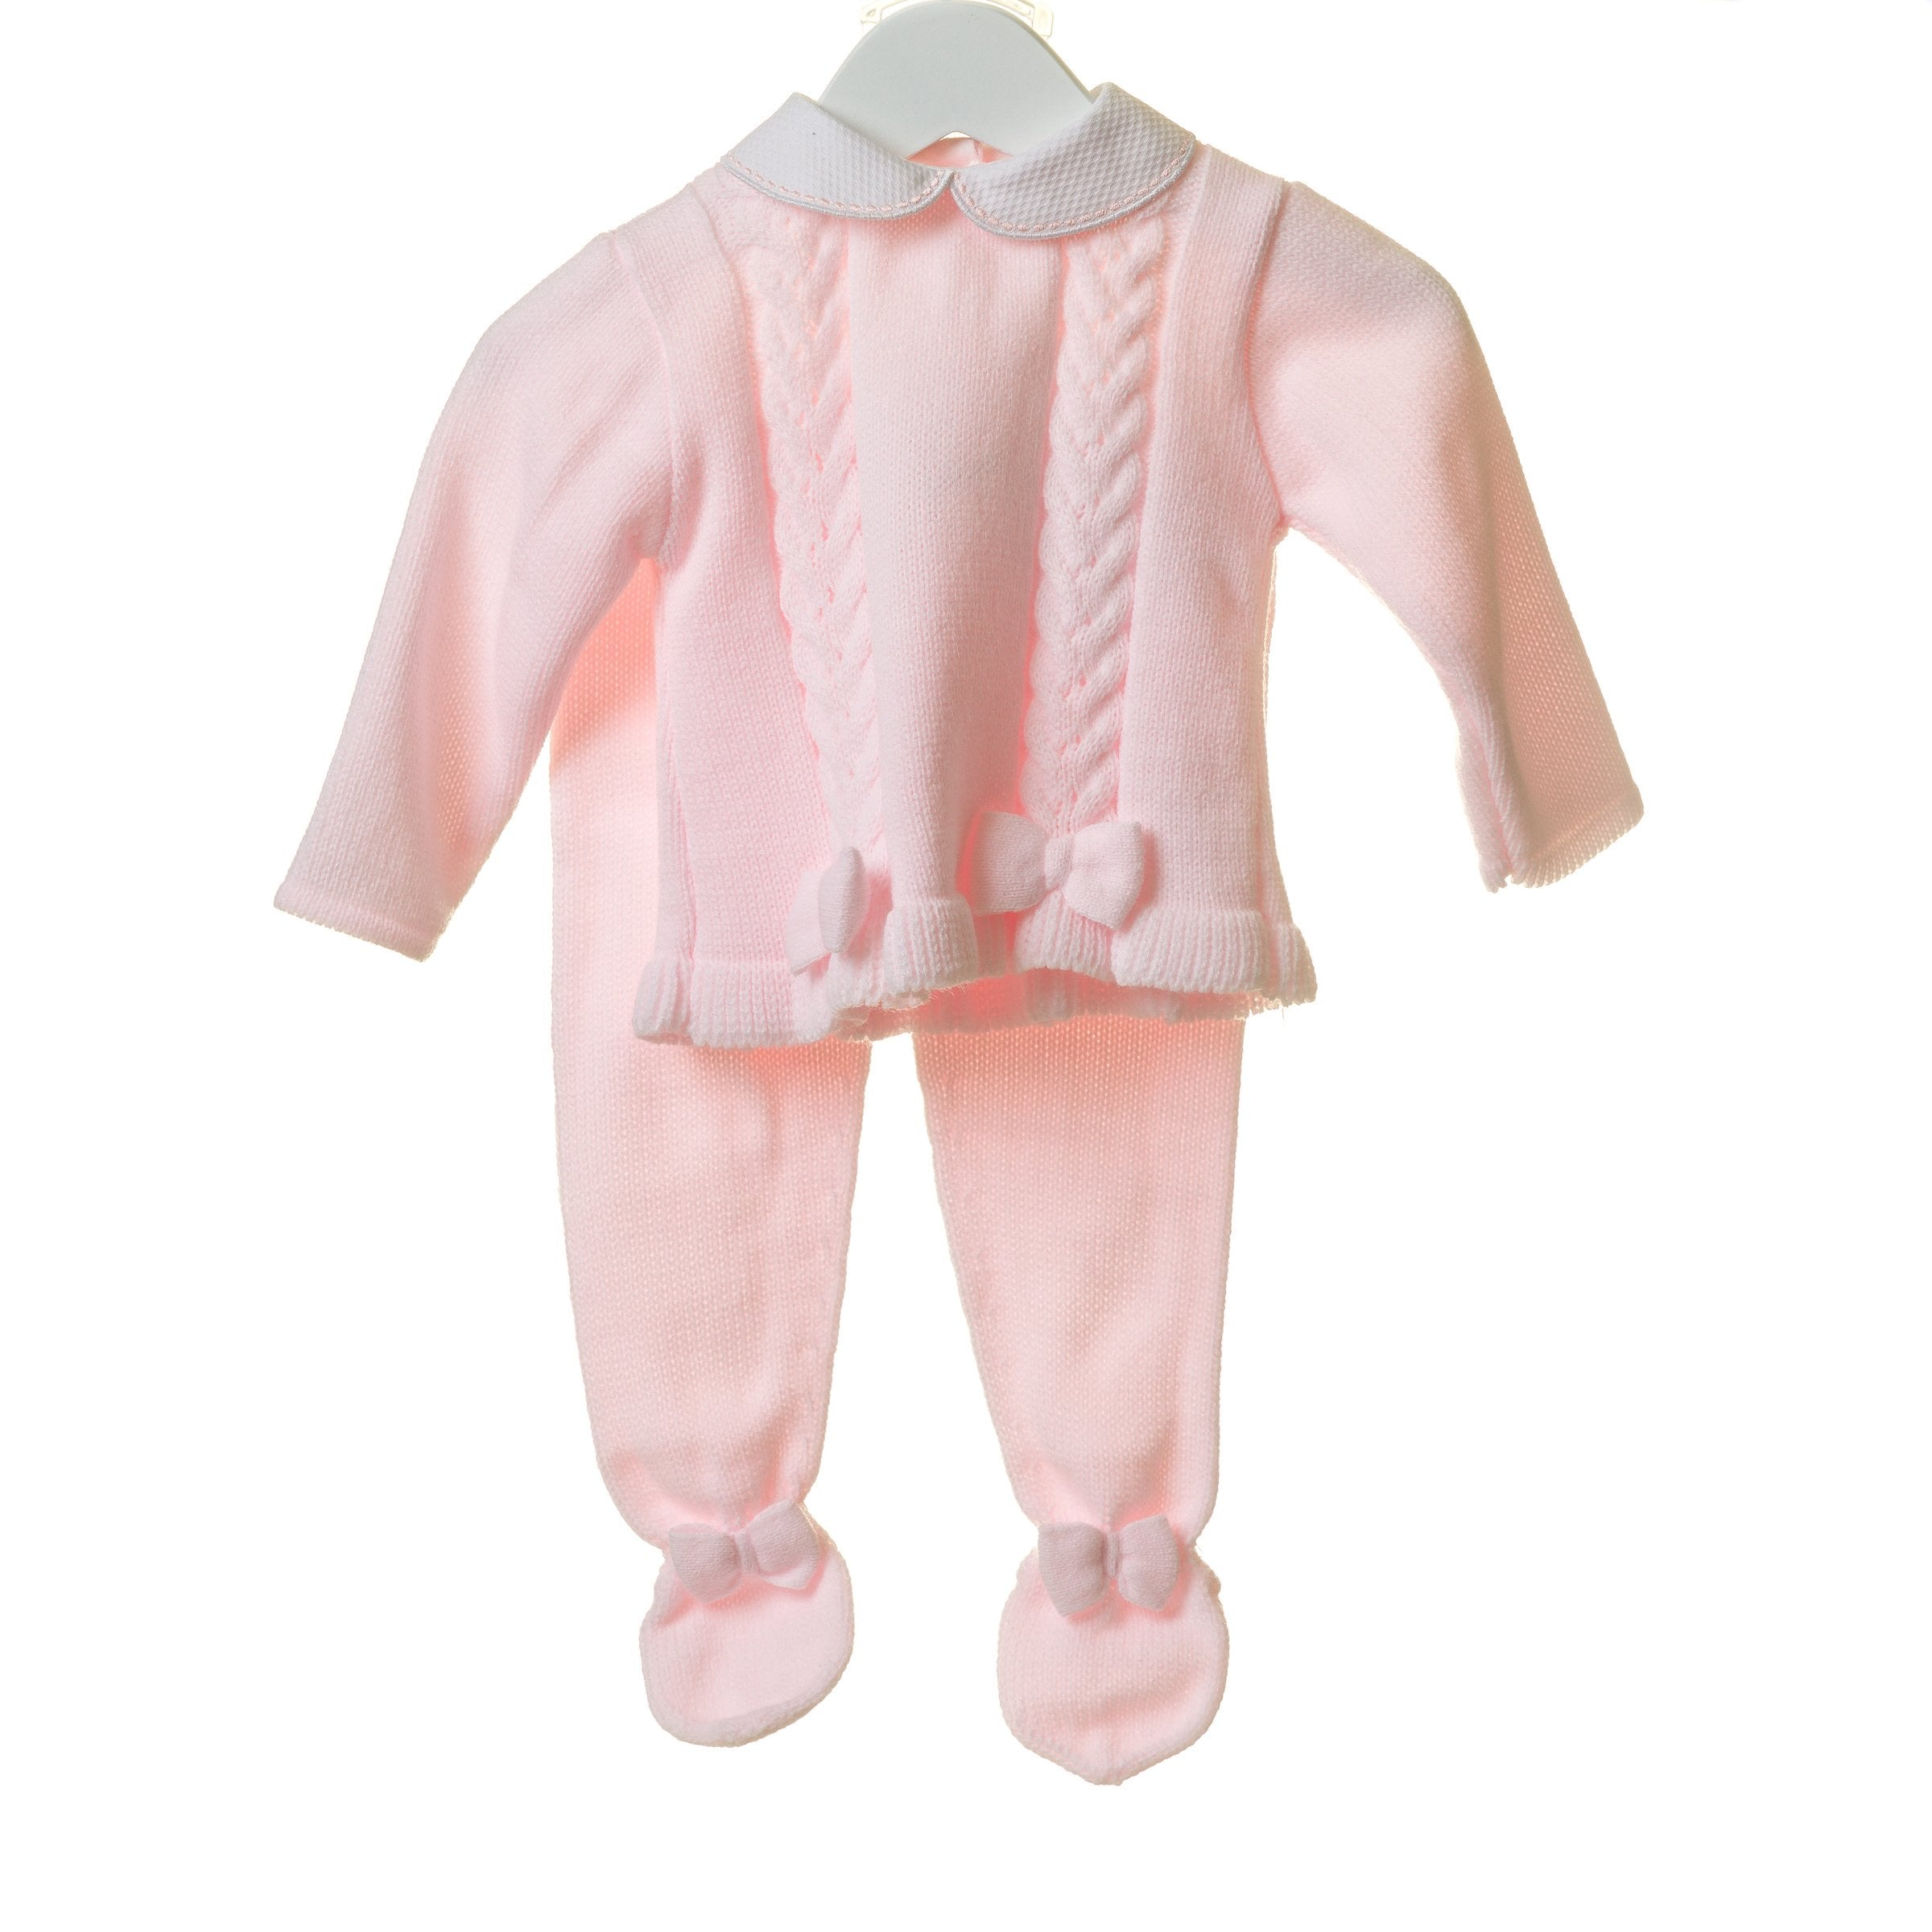 Blues Baby Pink Bow Knitted Set